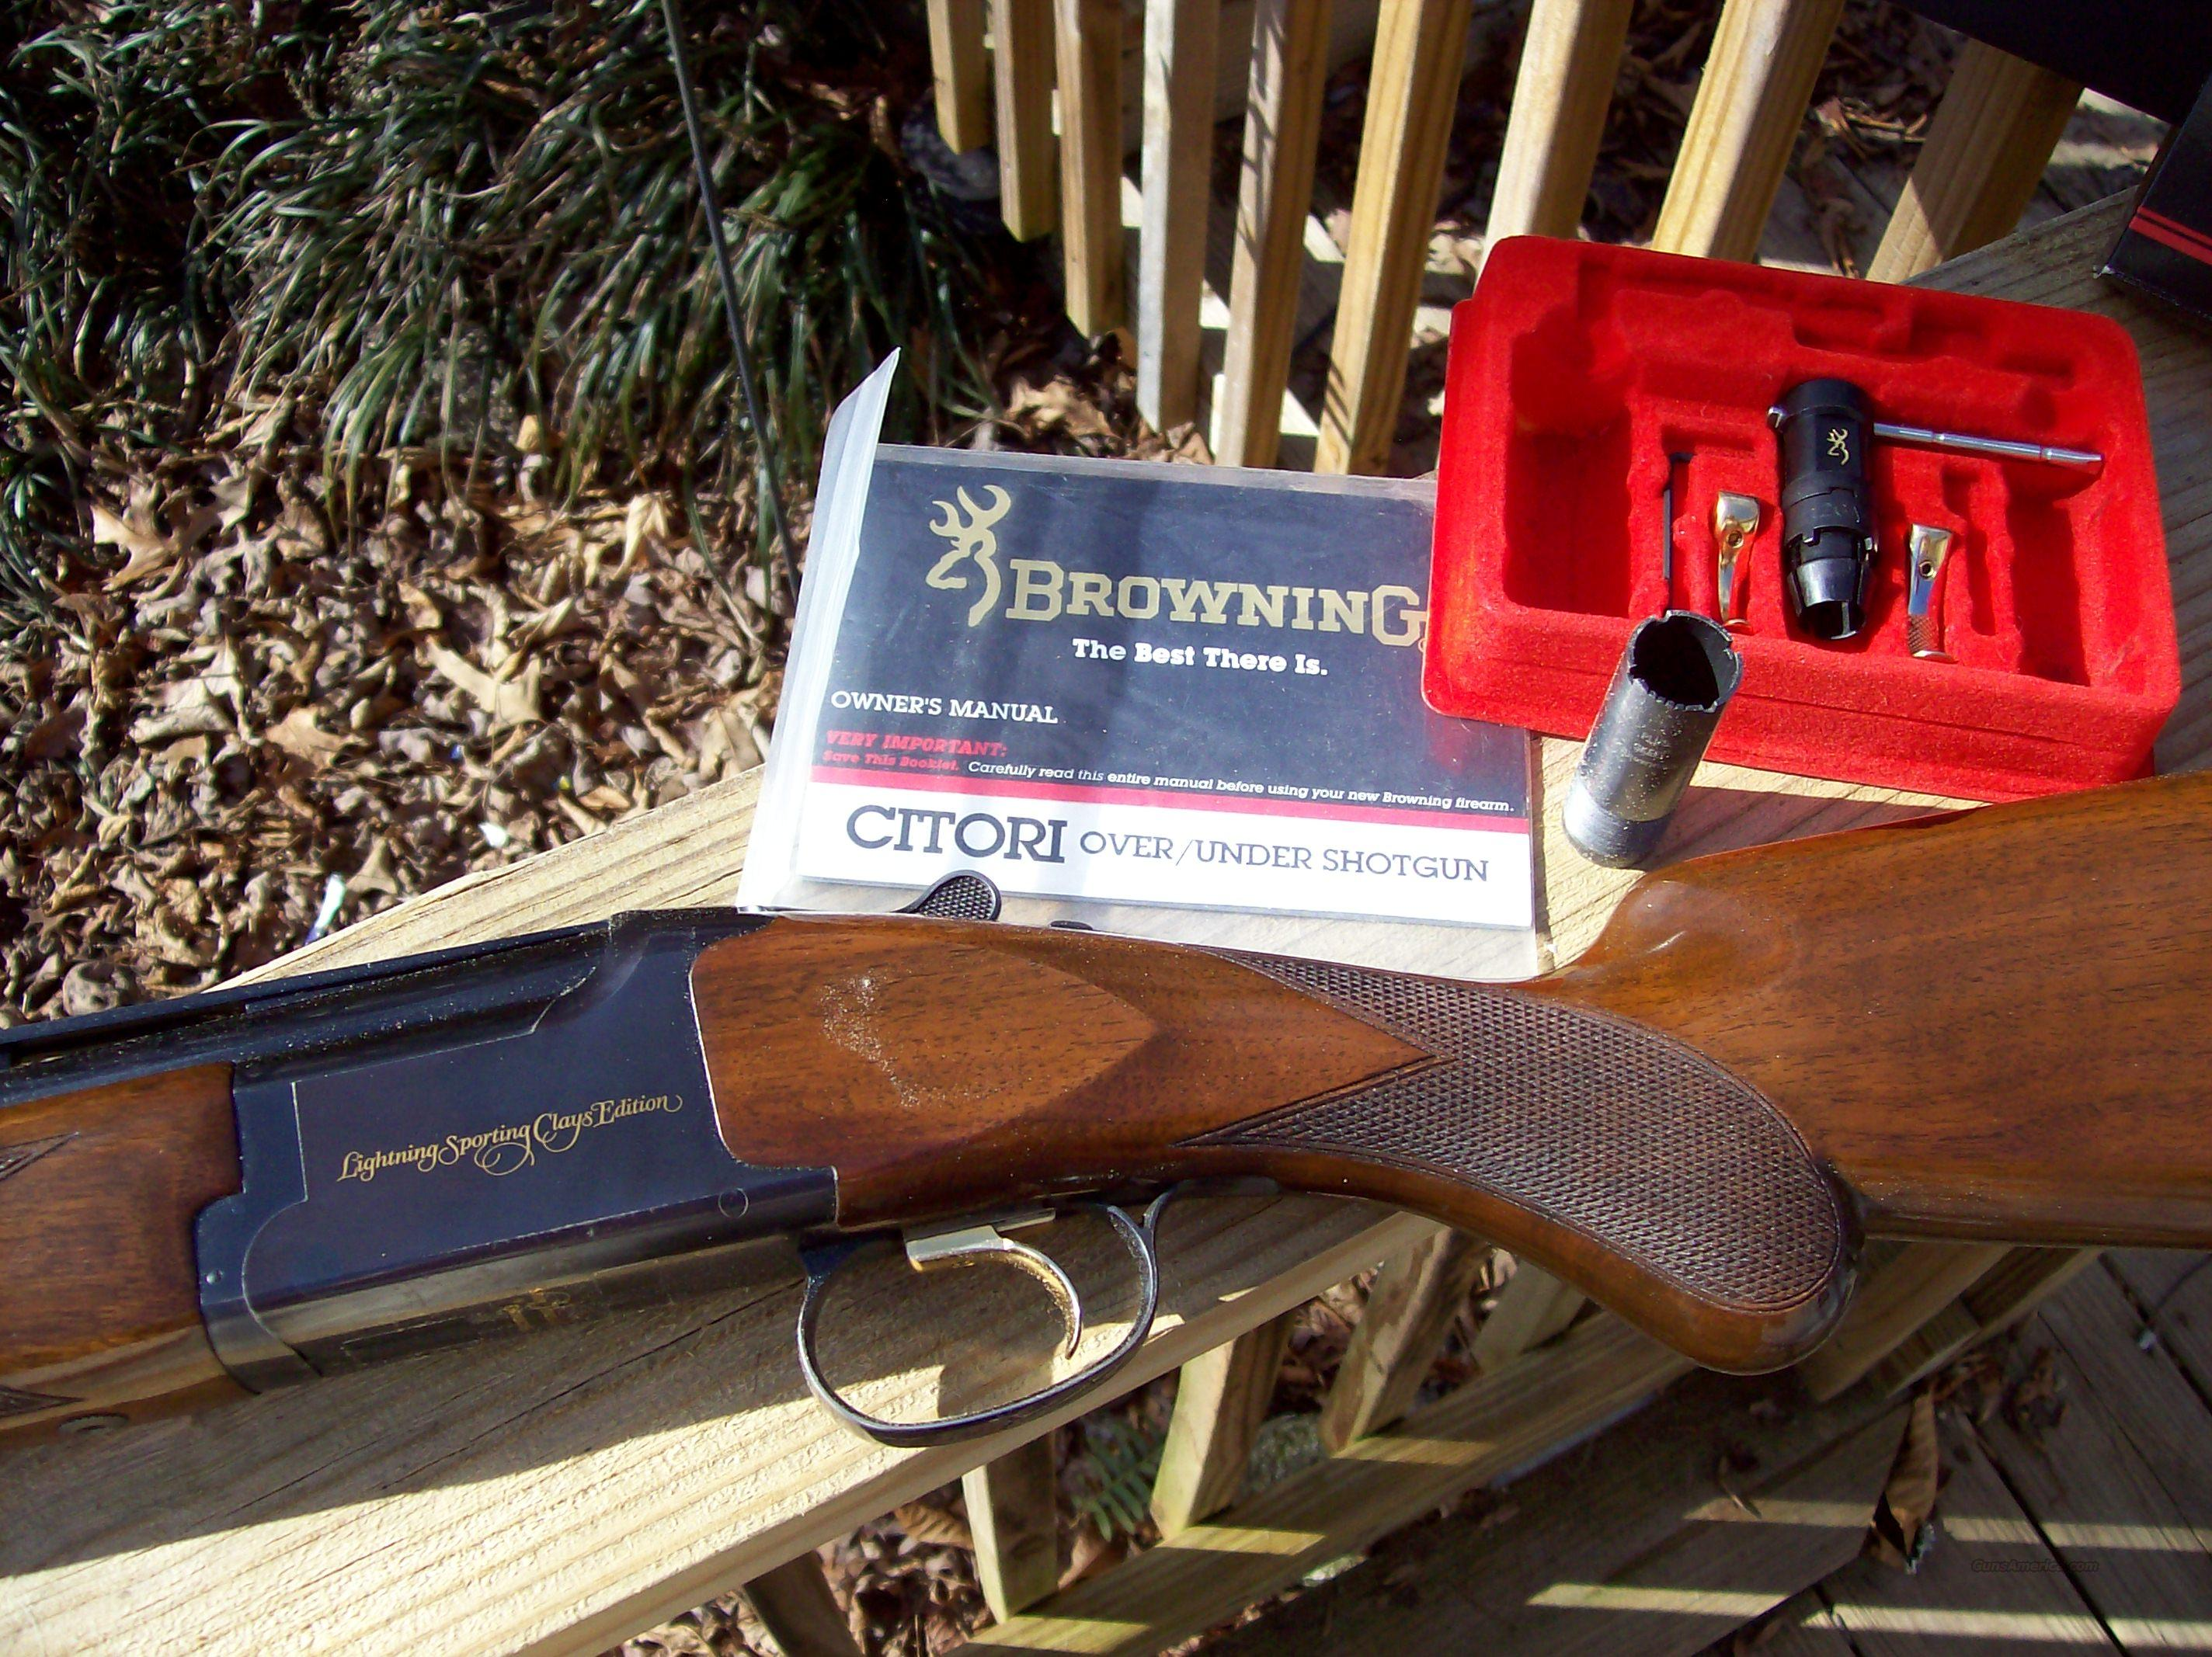 Browning Citori Lightning Sporting Clays Edition